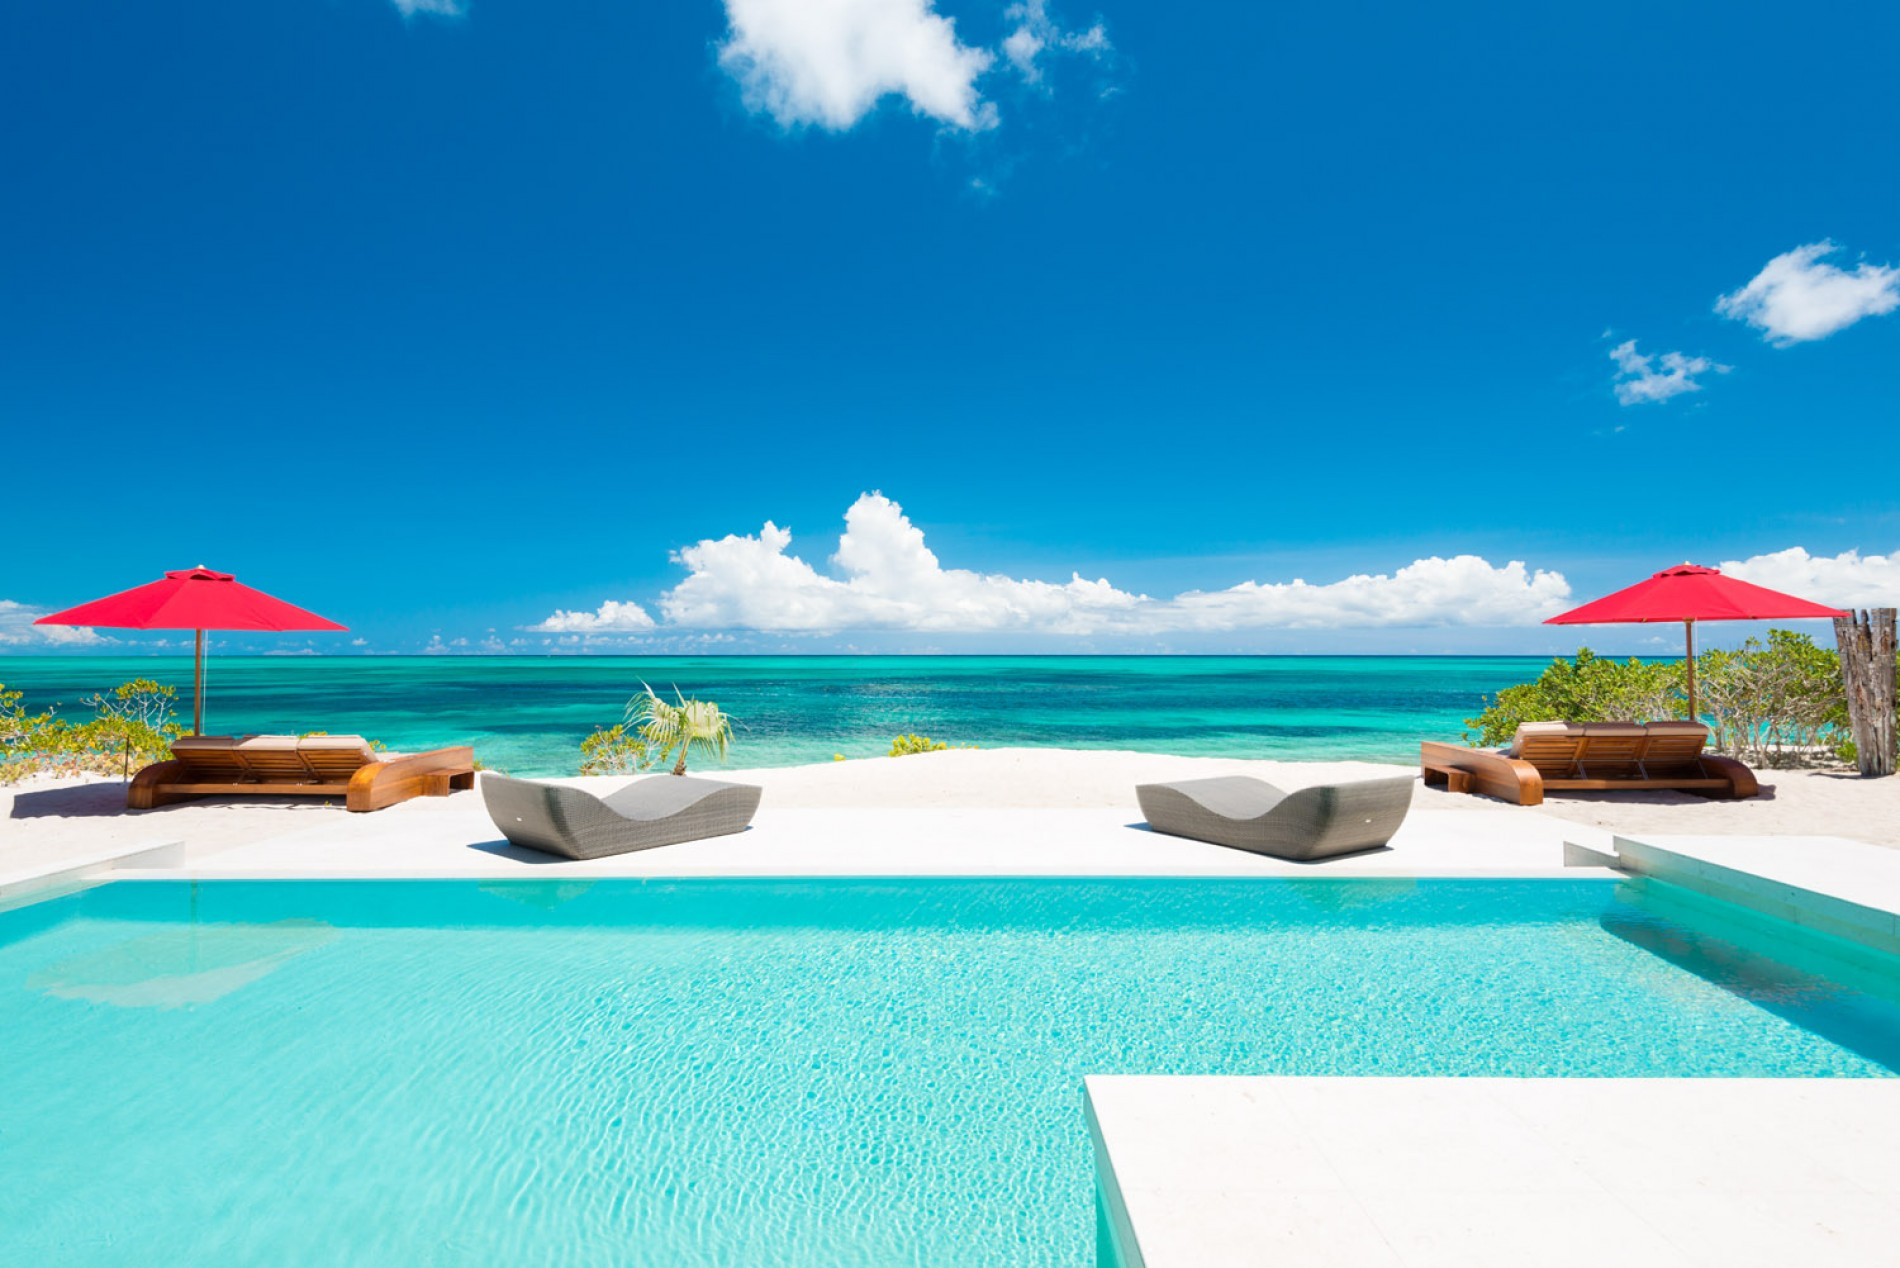 The growth of Grace Bay Resorts in Turks and Caicos